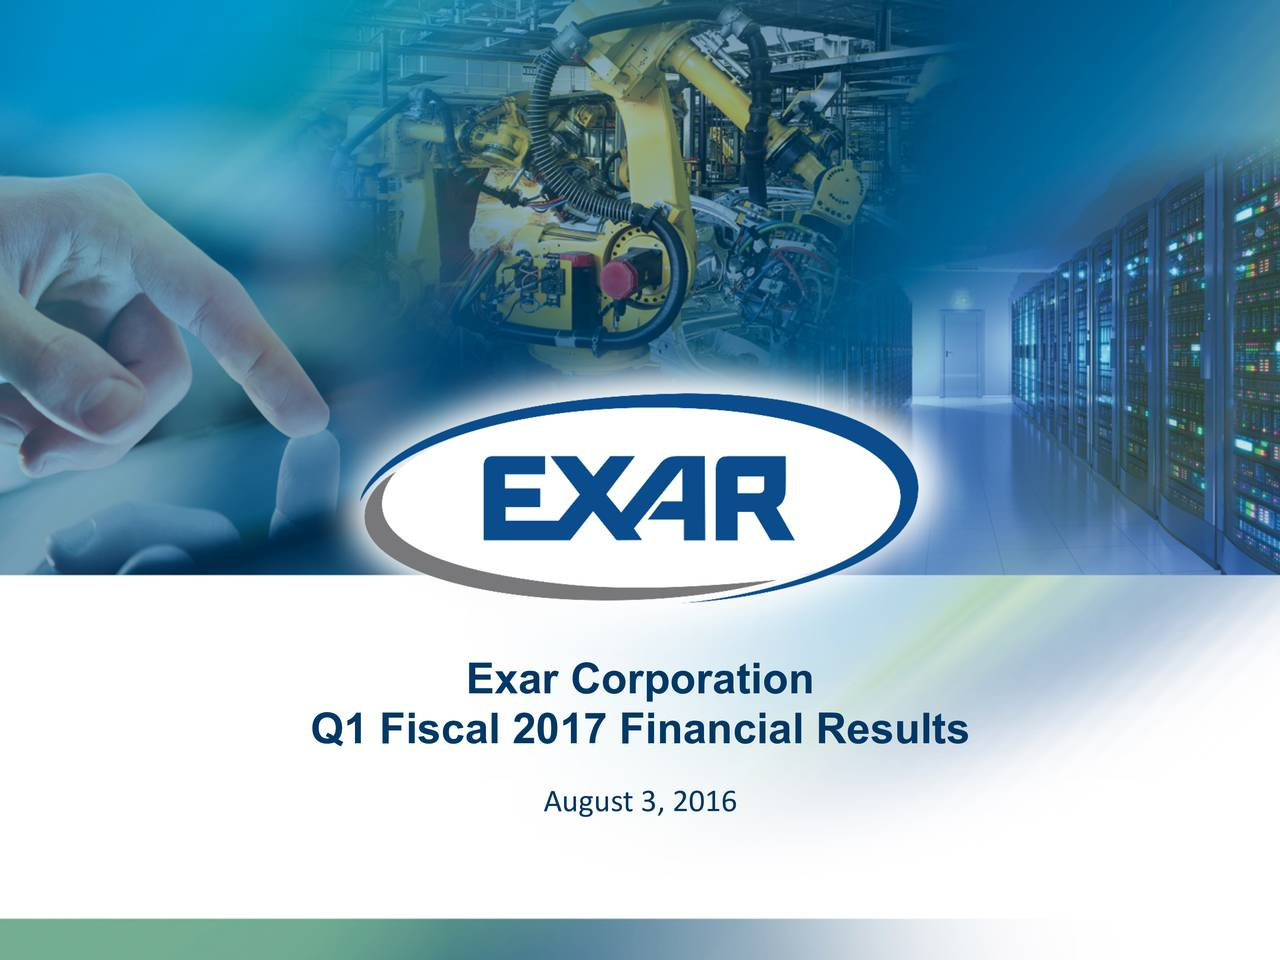 Q1 Fiscal 2017 Financial Results August 3, 2016